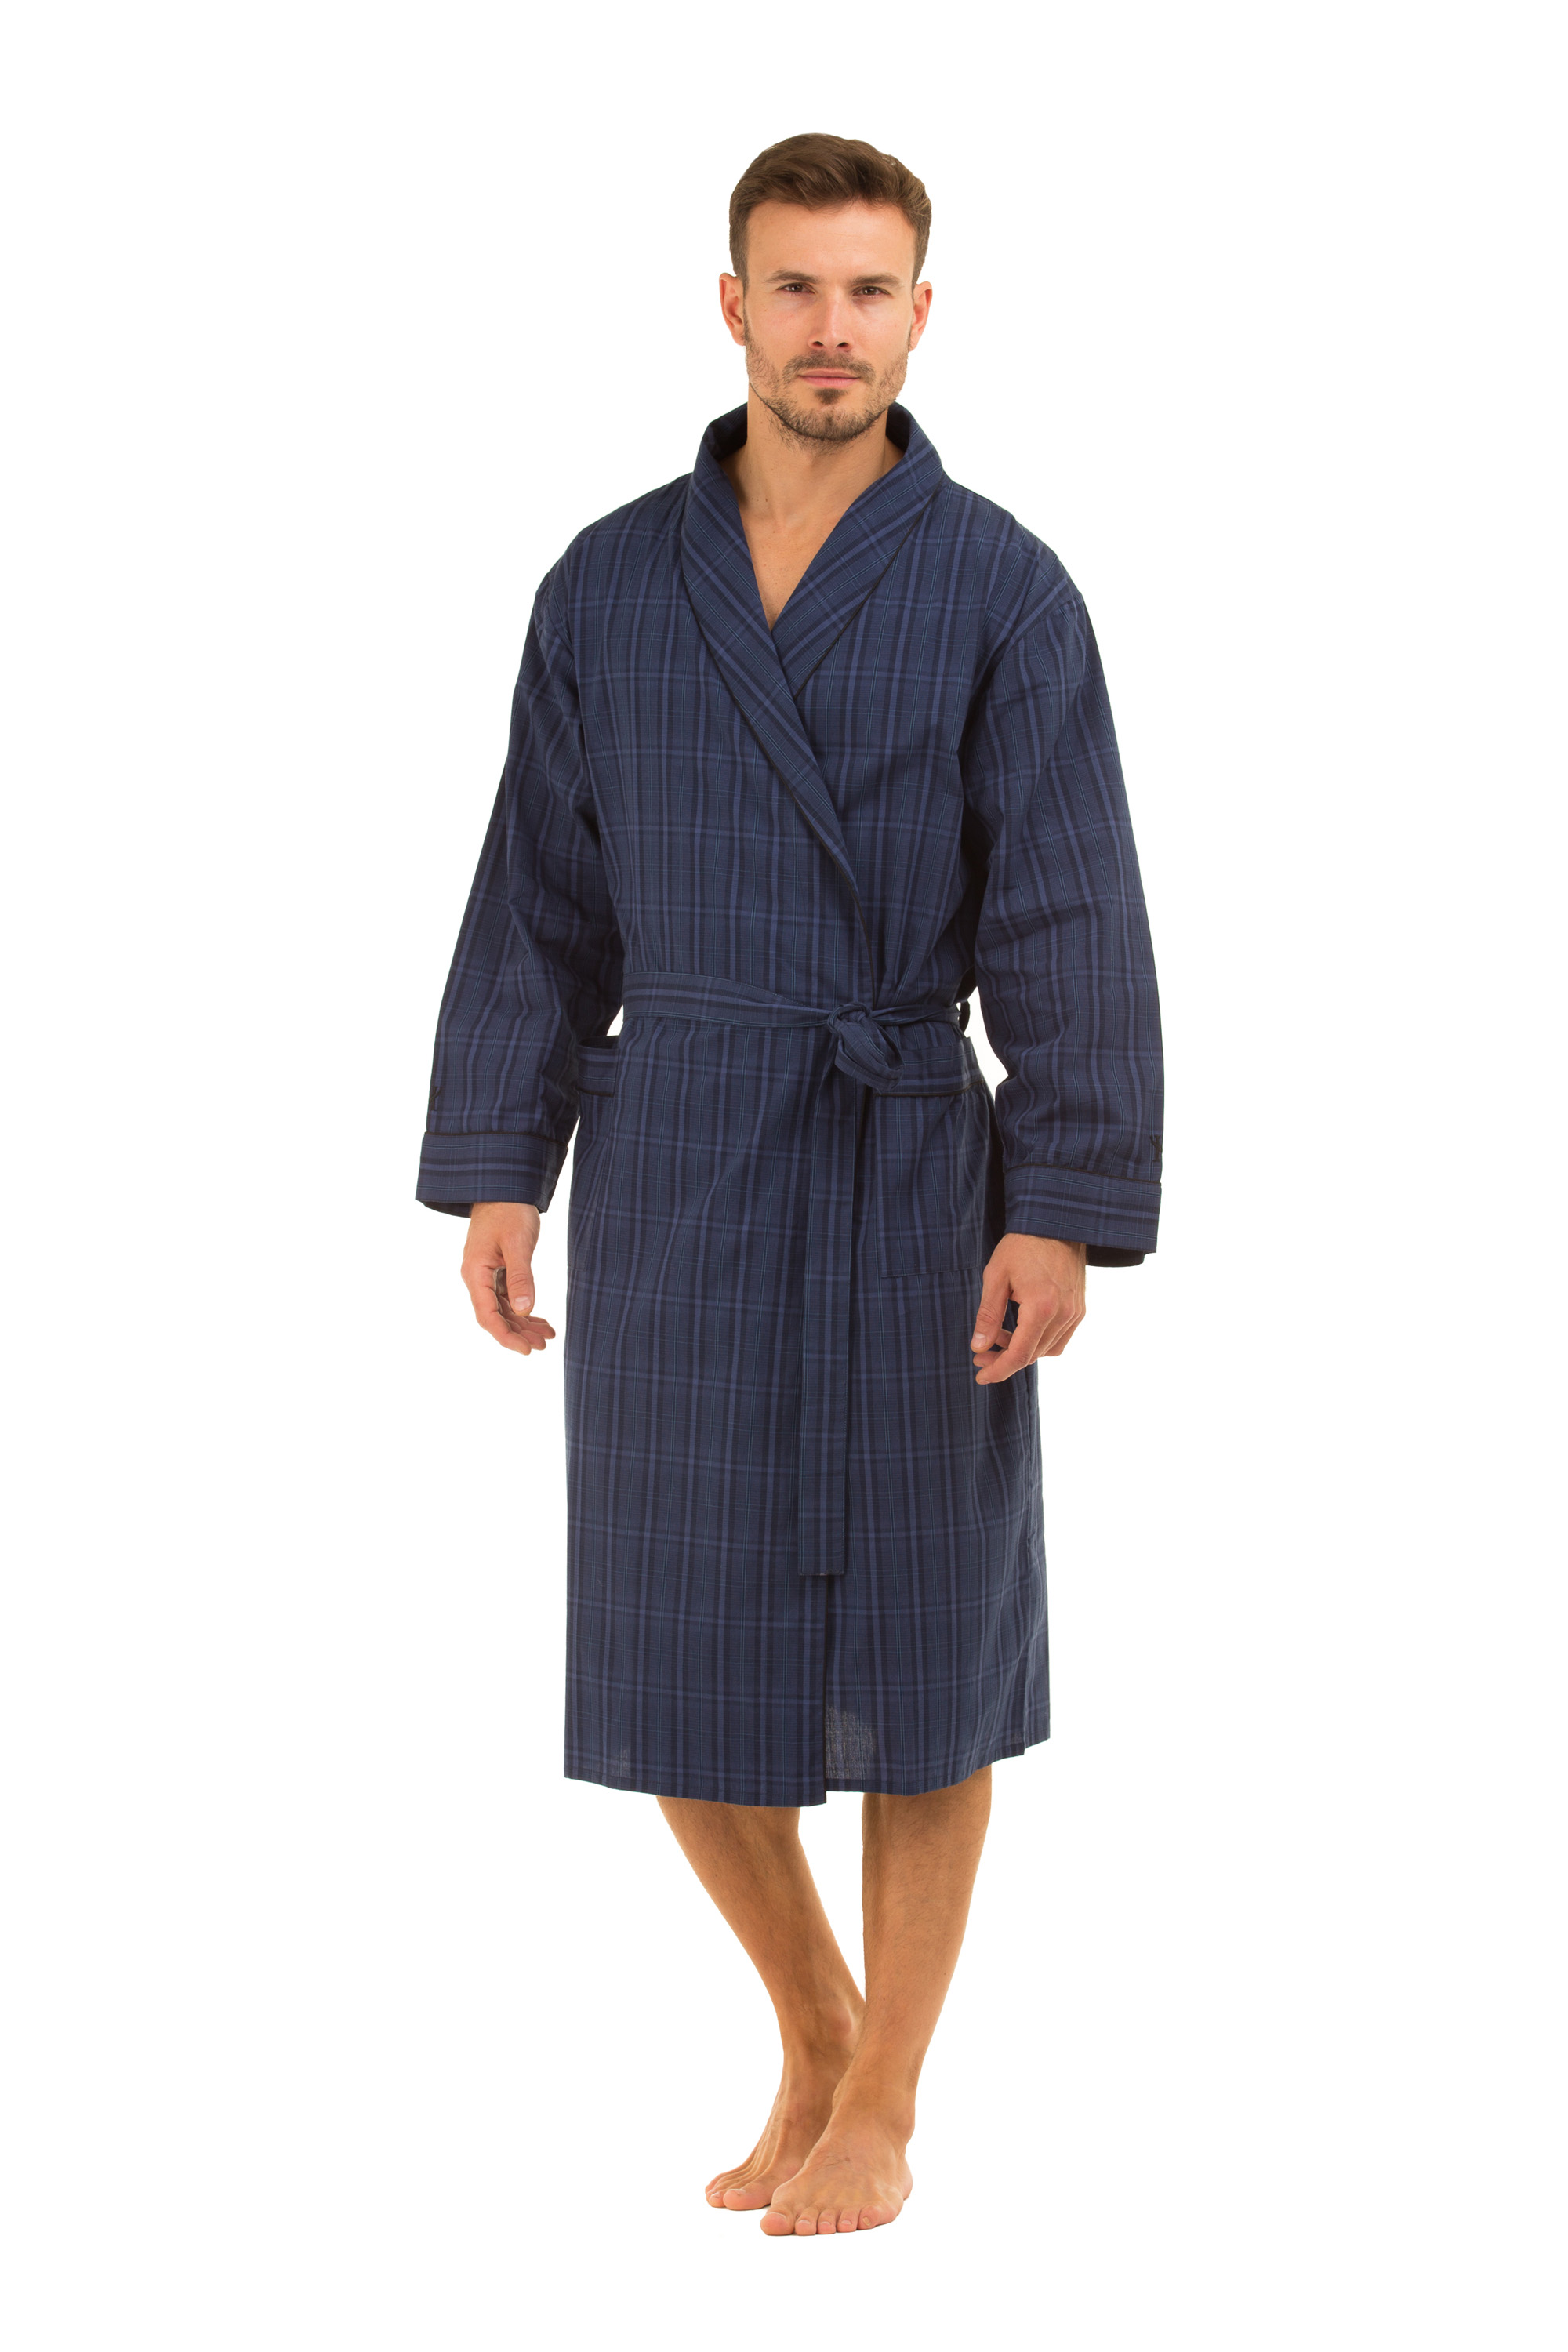 Haigman Men\'s Cotton Dressing Gown Bath Robe Kimono Nightwear ...